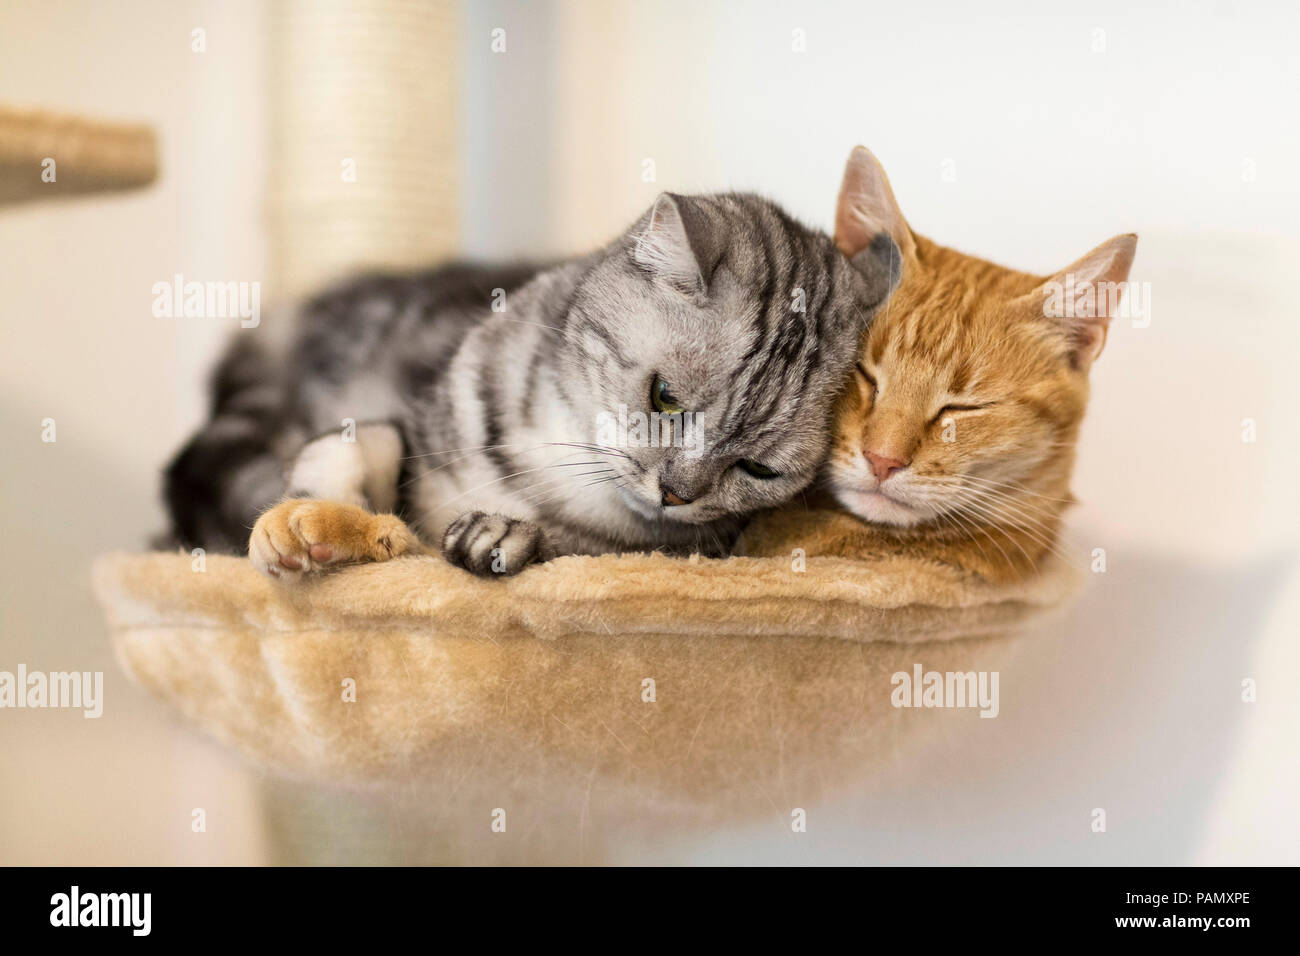 British Shorthair and domestic cat. Two adult cats lying next to each other on a pet bed. Germany . Stock Photo